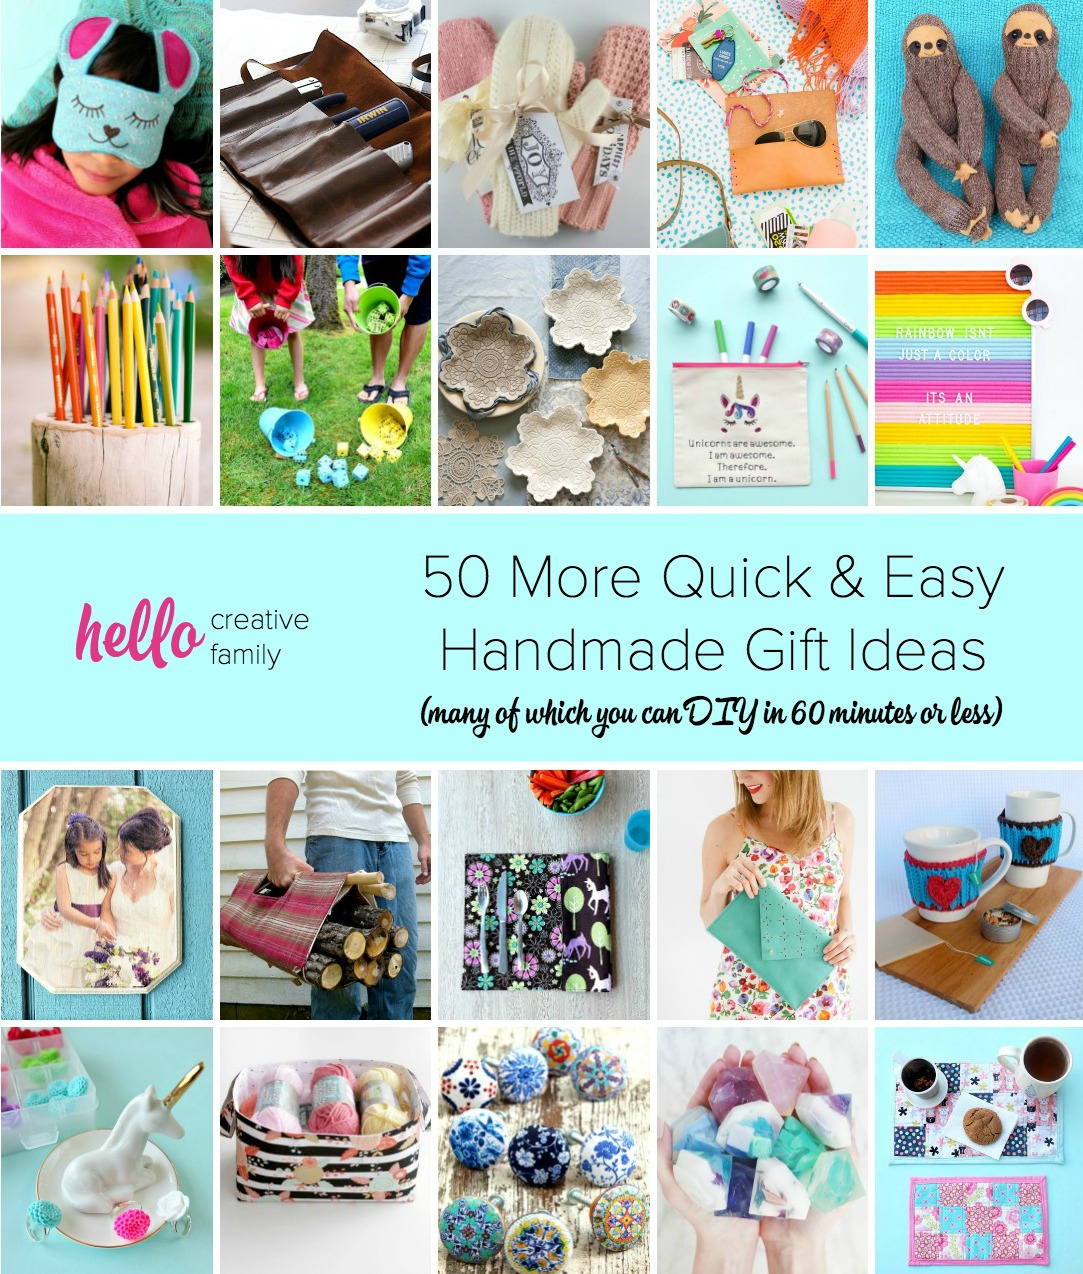 50 More Quick and Easy Handmade Gift Ideas (1 hour or less!)